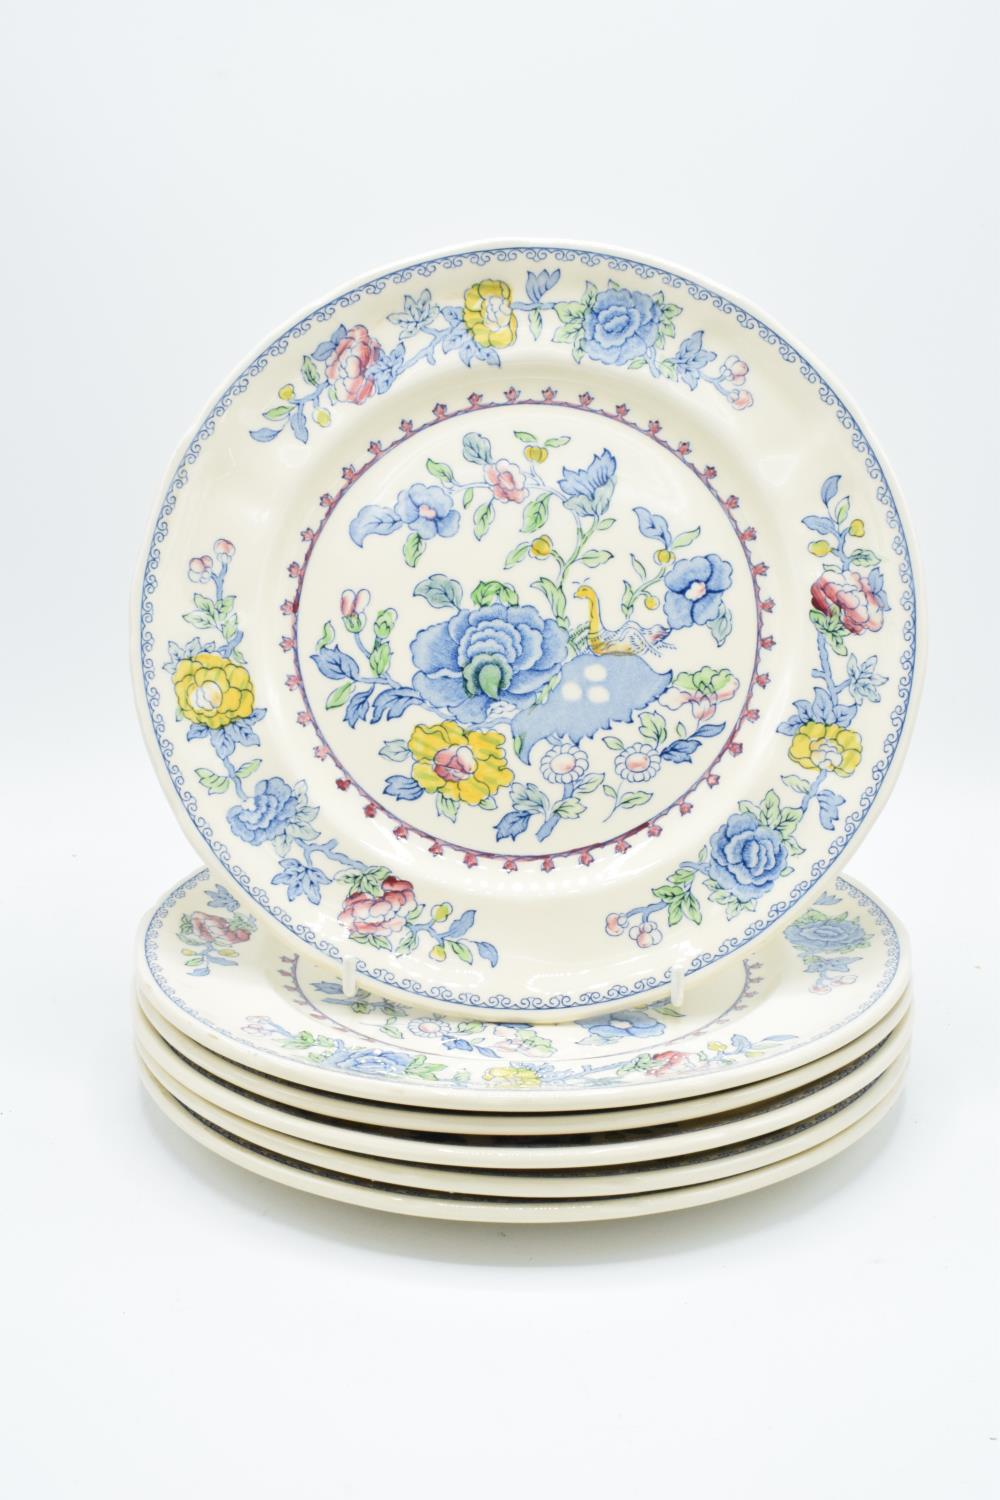 Masons Regency 10'' dinner plates (6) Generally in good condition, one has bad staining